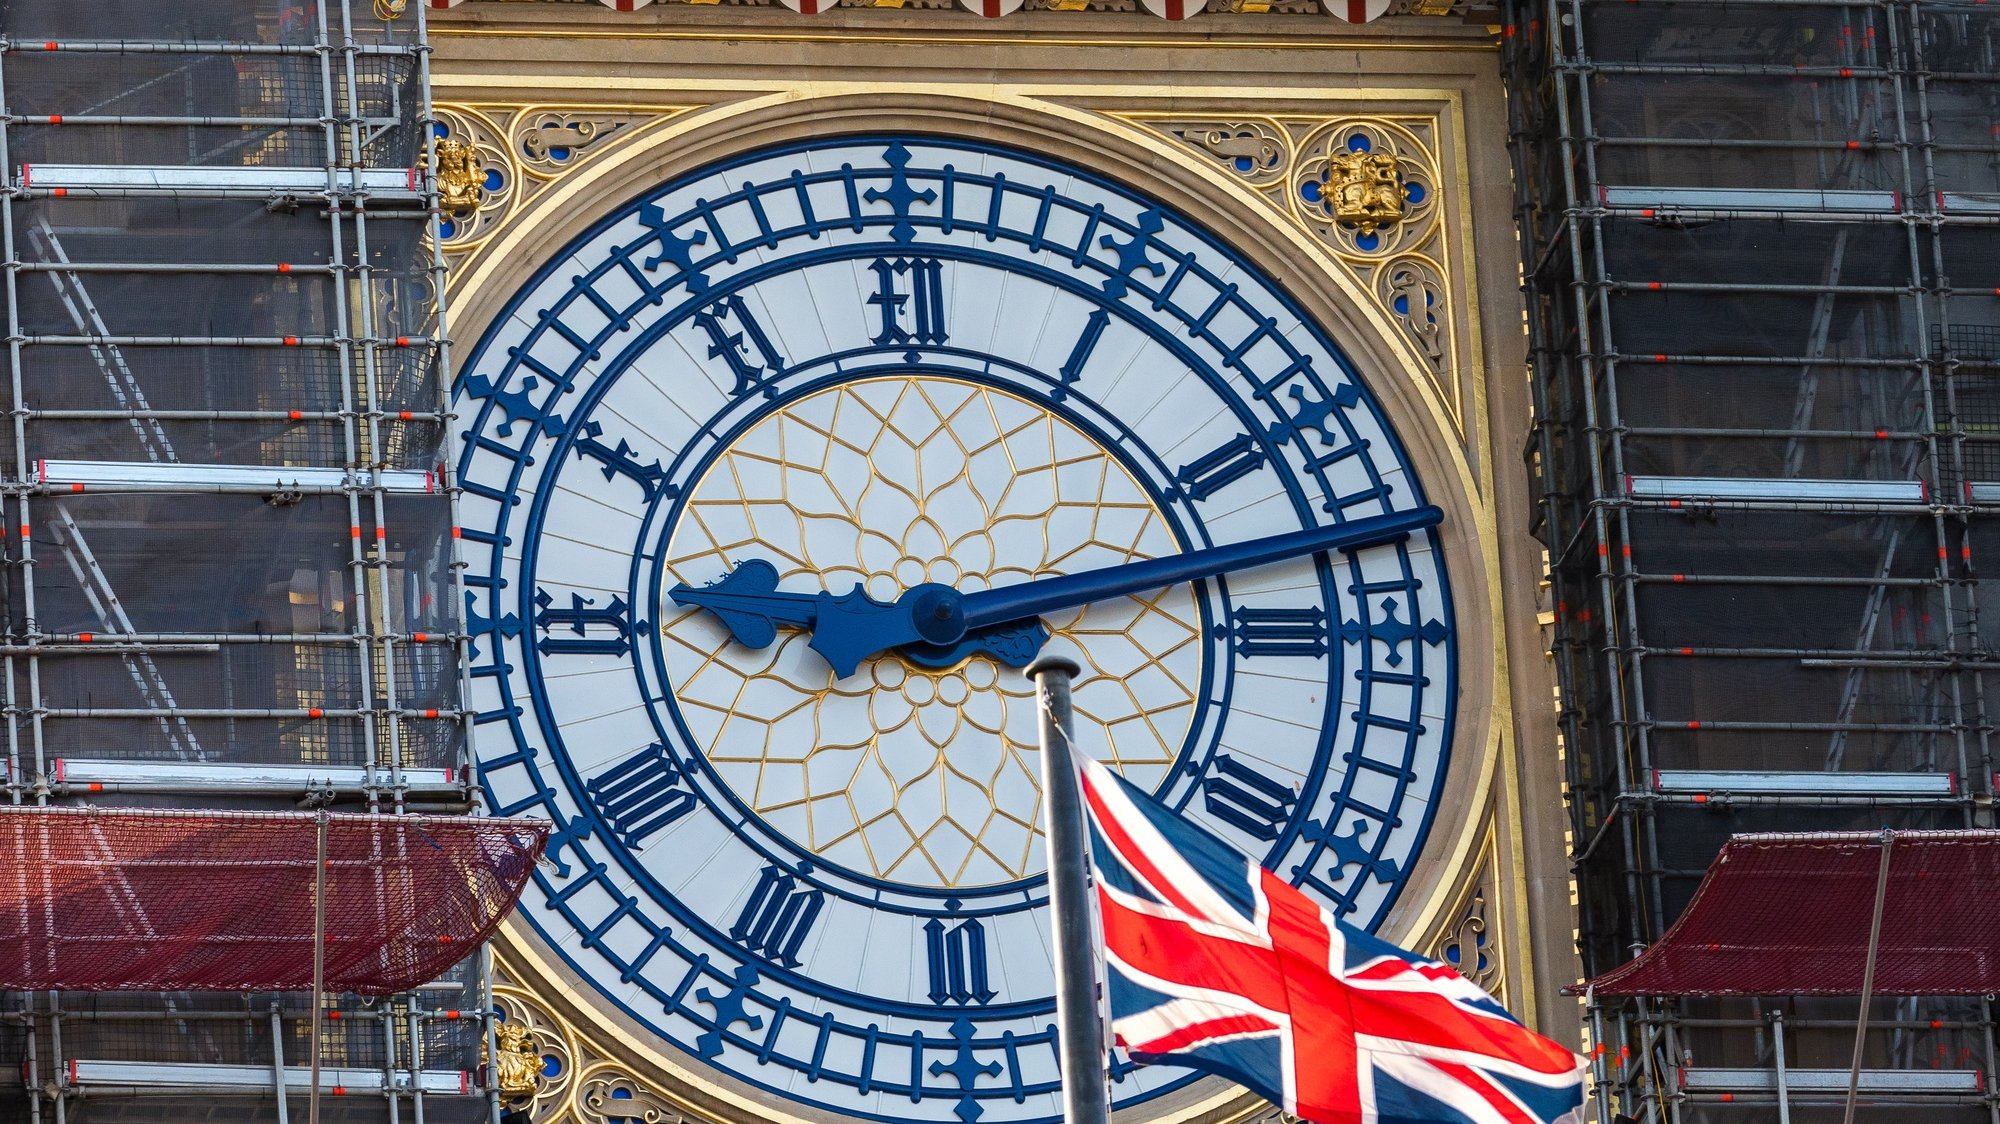 epa08863203 A Union Jack flag waves next to the clock face of Big Ben in Westminster, London, Britain, 05 December 2020. British and EU negotiators have paused Brexit talks because they say significant divergences remain and the conditions for a deal between the two sides have not been met.  EPA/VICKIE FLORES